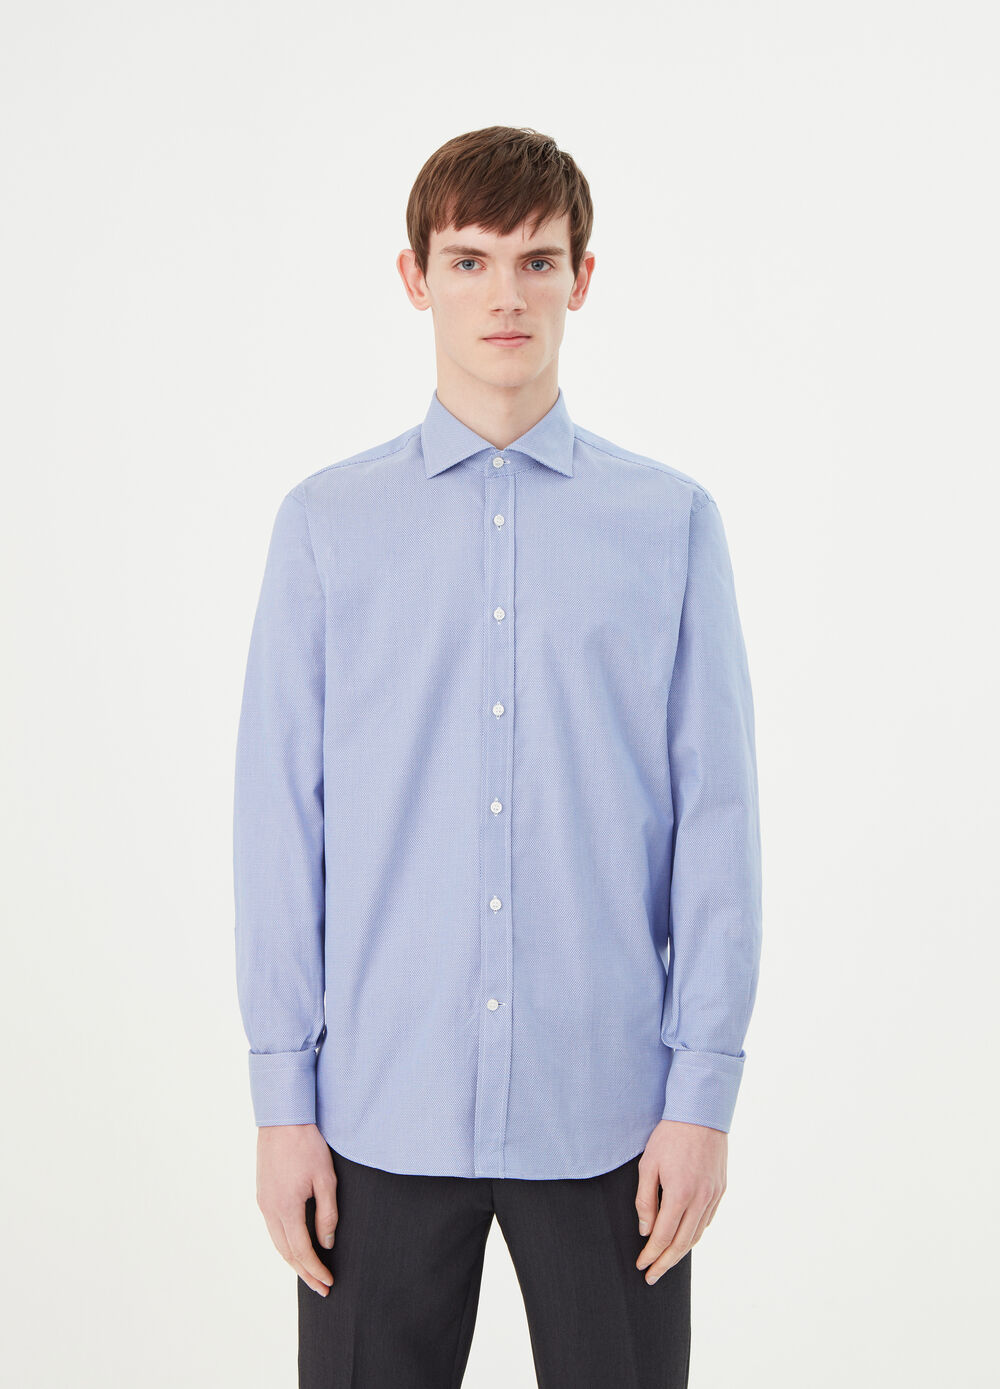 Shirt with cut-away collar with double twist